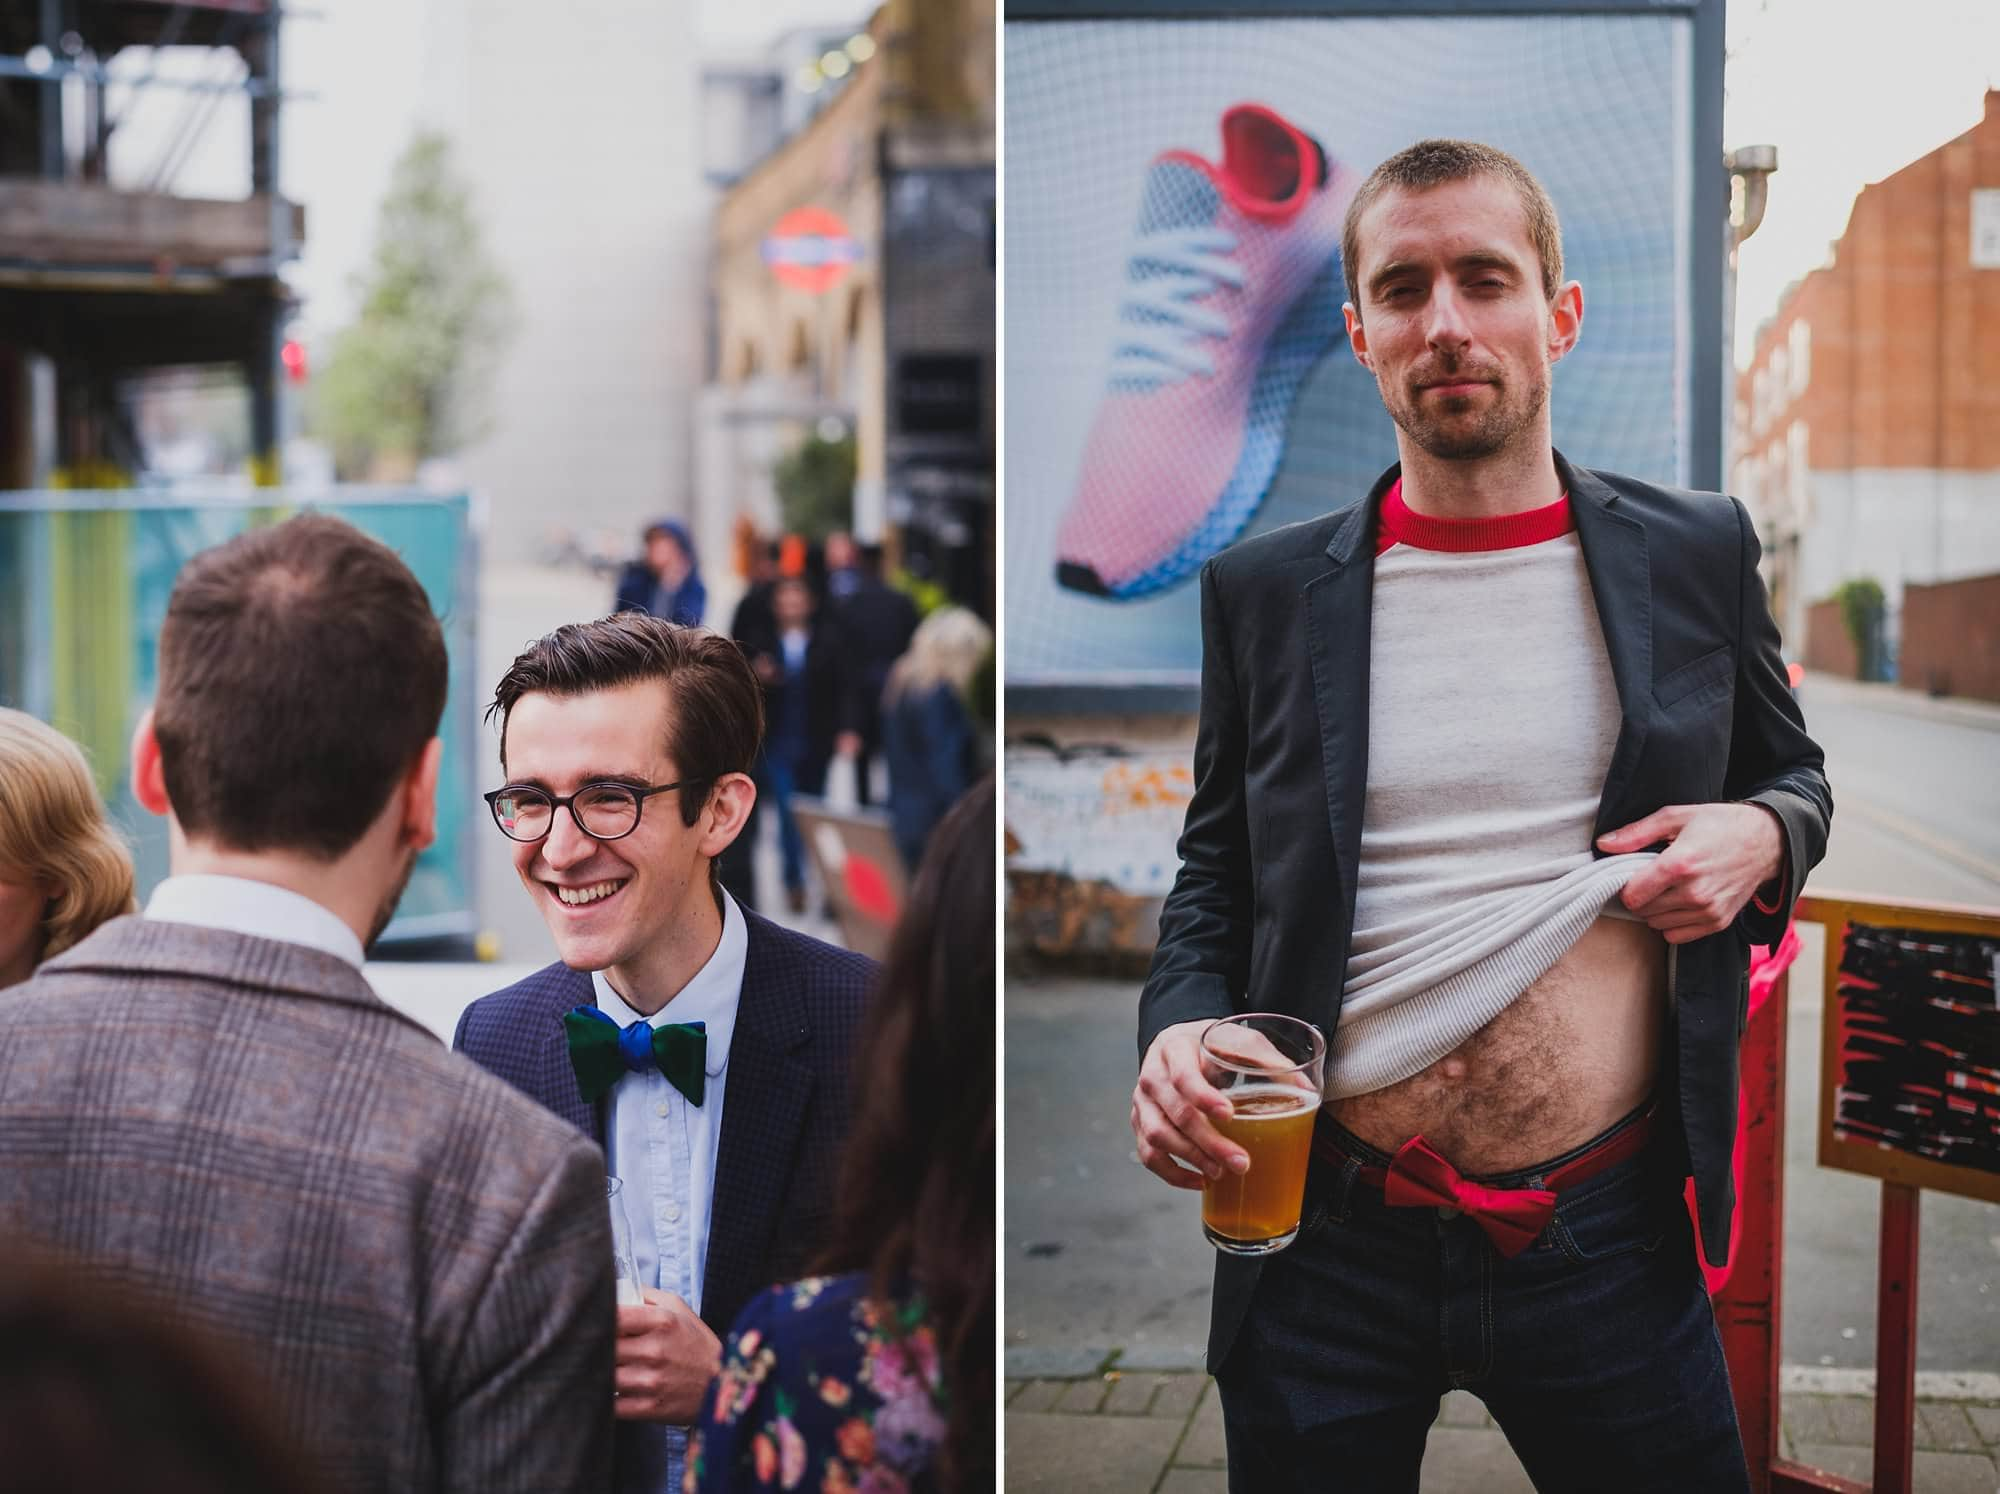 london party photographer hoxton arches 016 - An Elopement Reception at Hoxton Arches